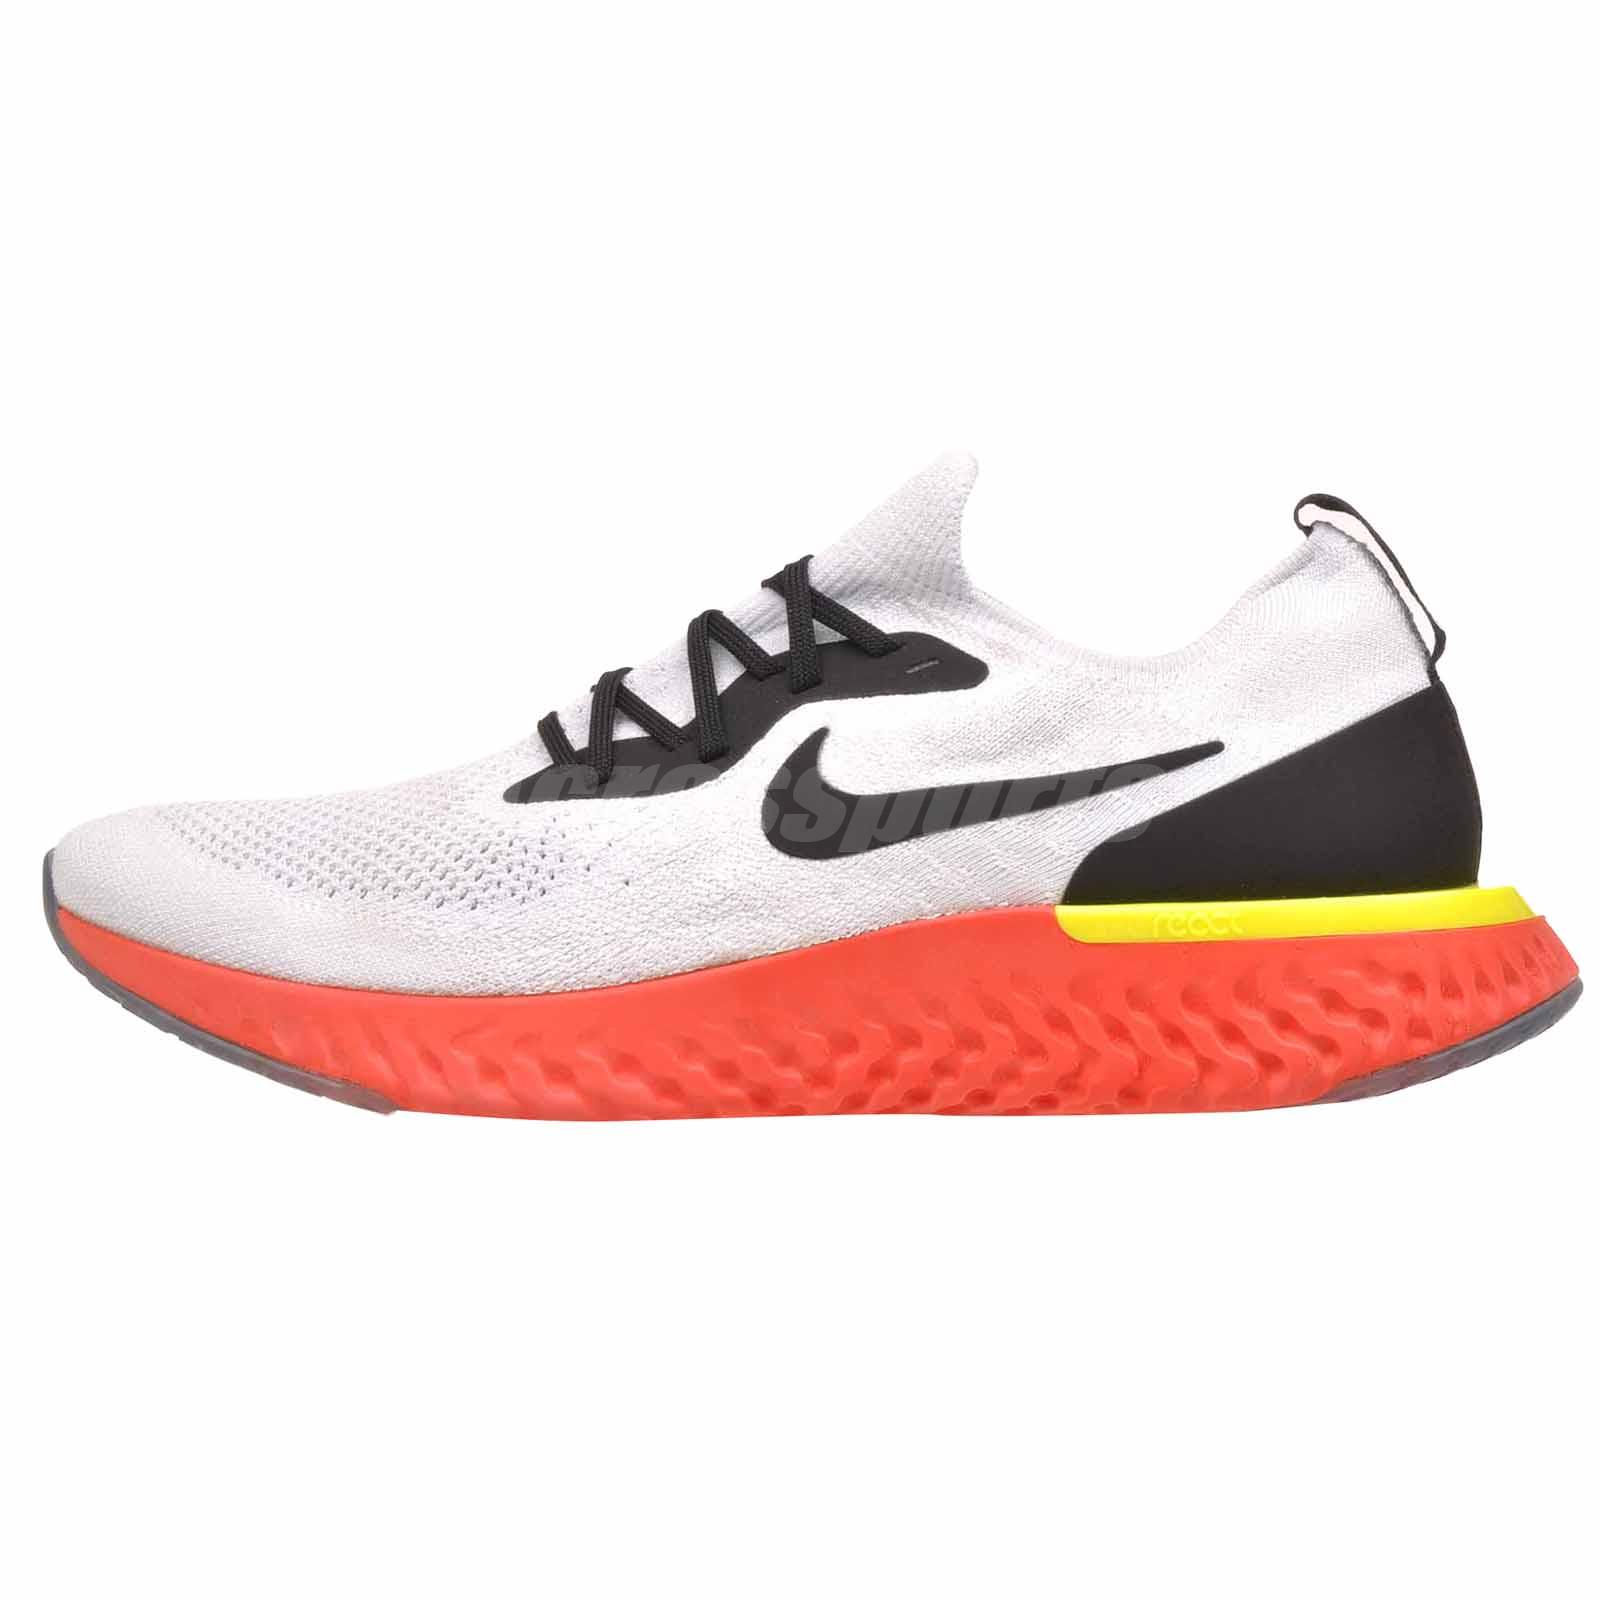 033983e9 Details about Nike Epic React Flyknit Running Mens Shoes Platinum Black  Orange AQ0067-103